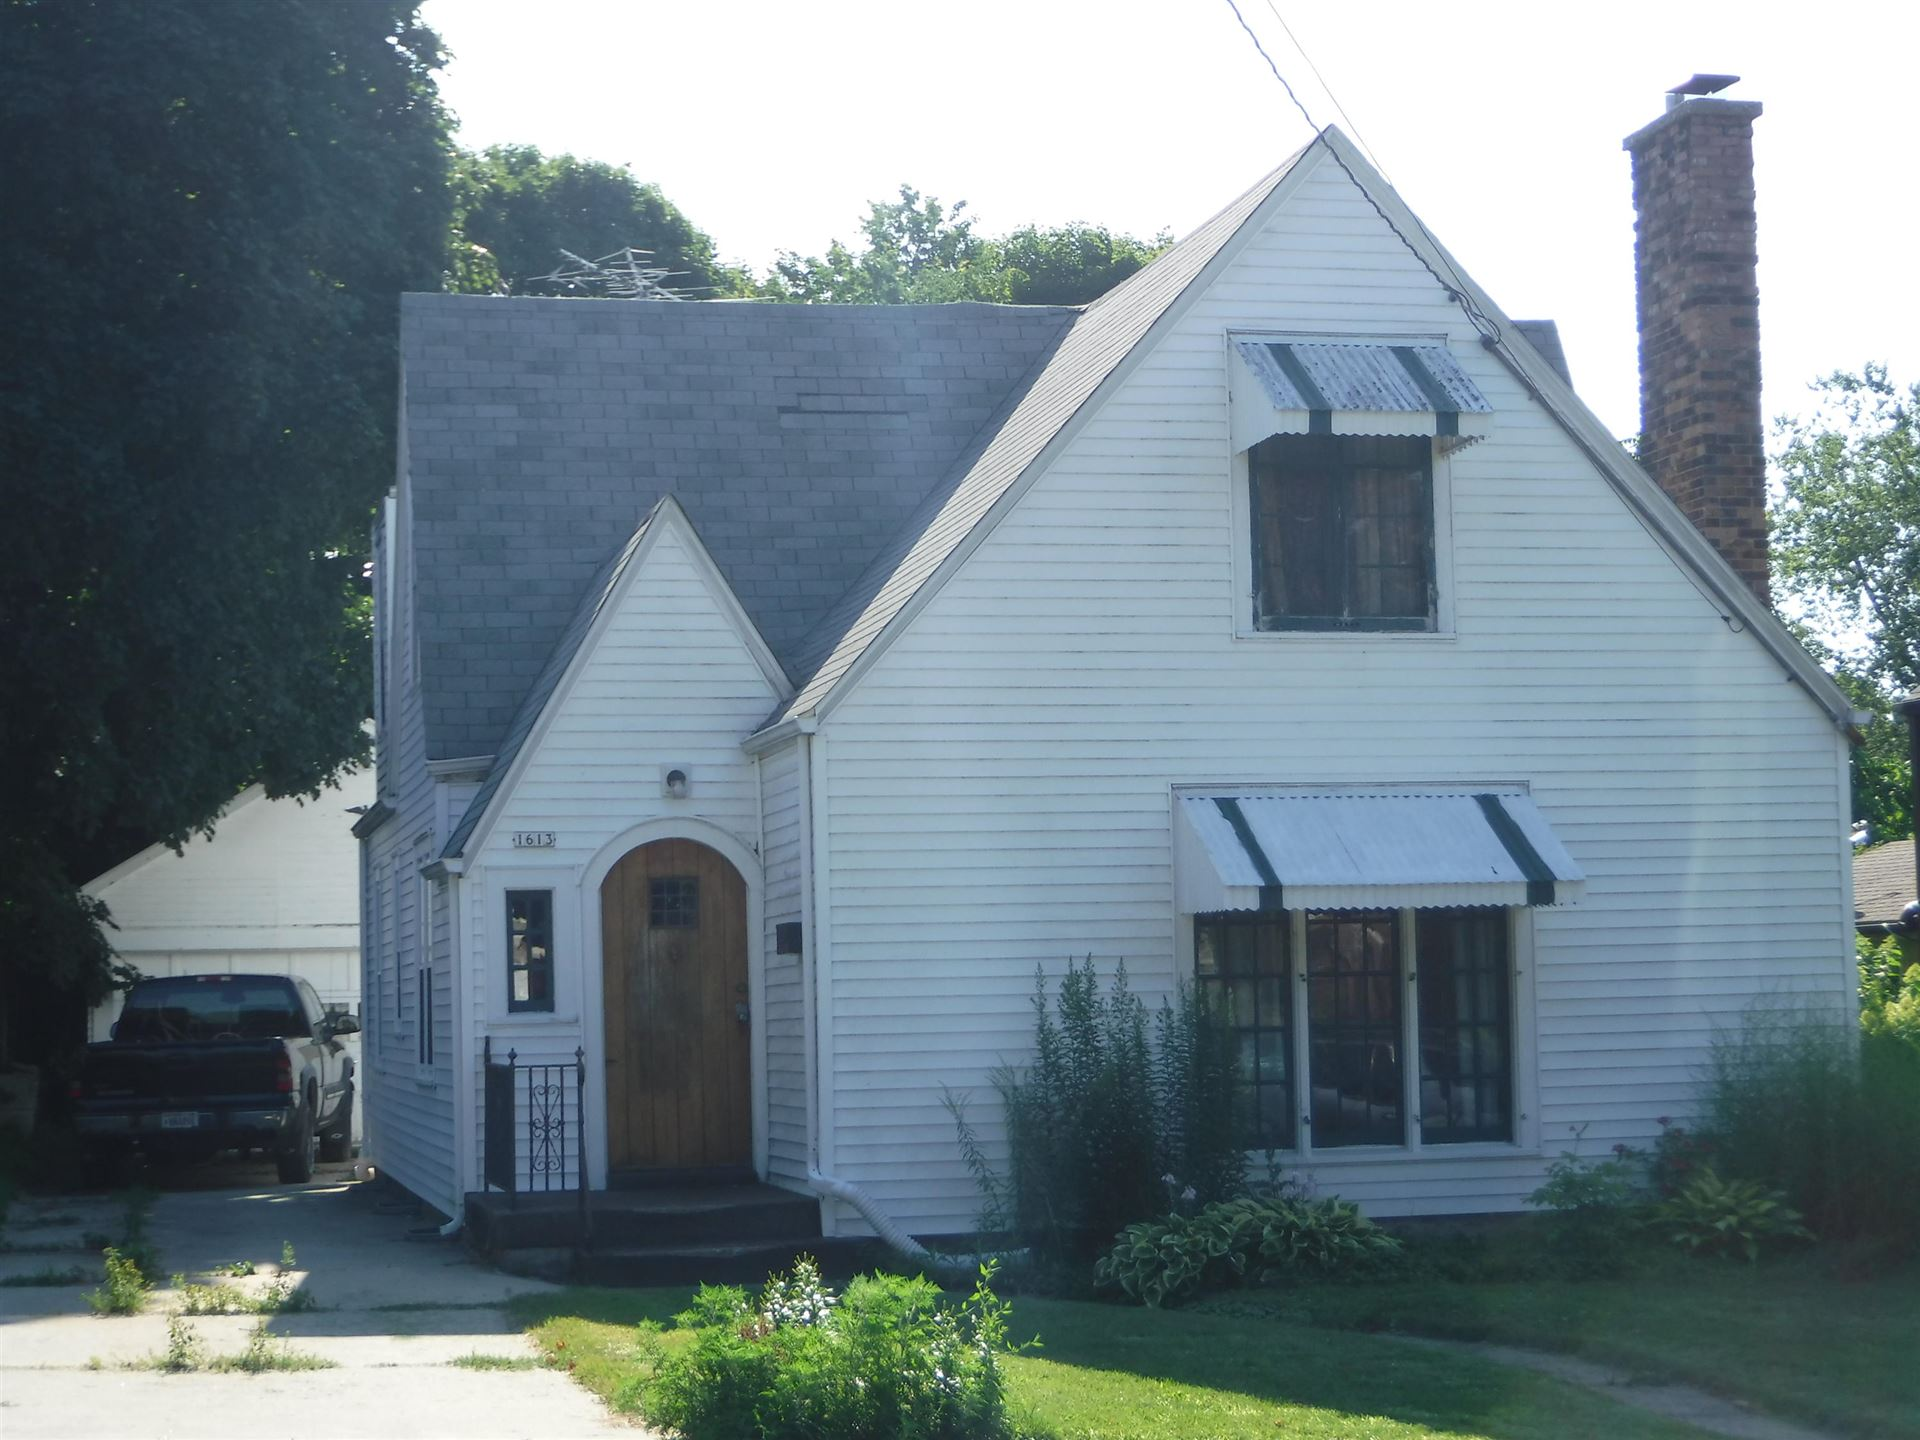 1613 S 12th St, Manitowoc, WI 54220 - #: 1720422